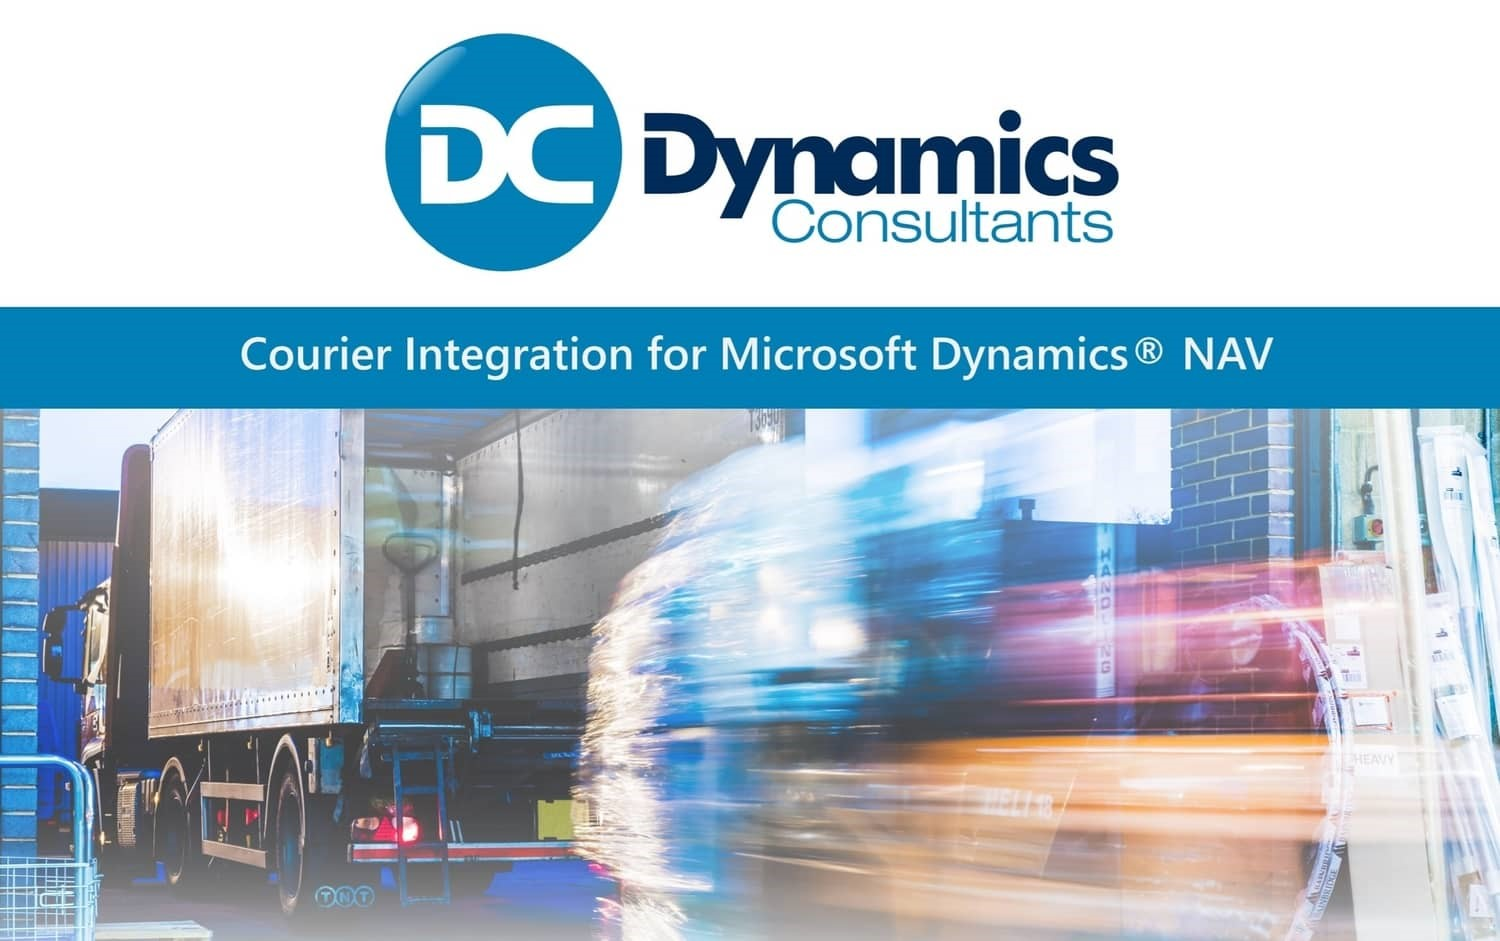 Download the Microsoft Dynamics 365 to courier integration brochure